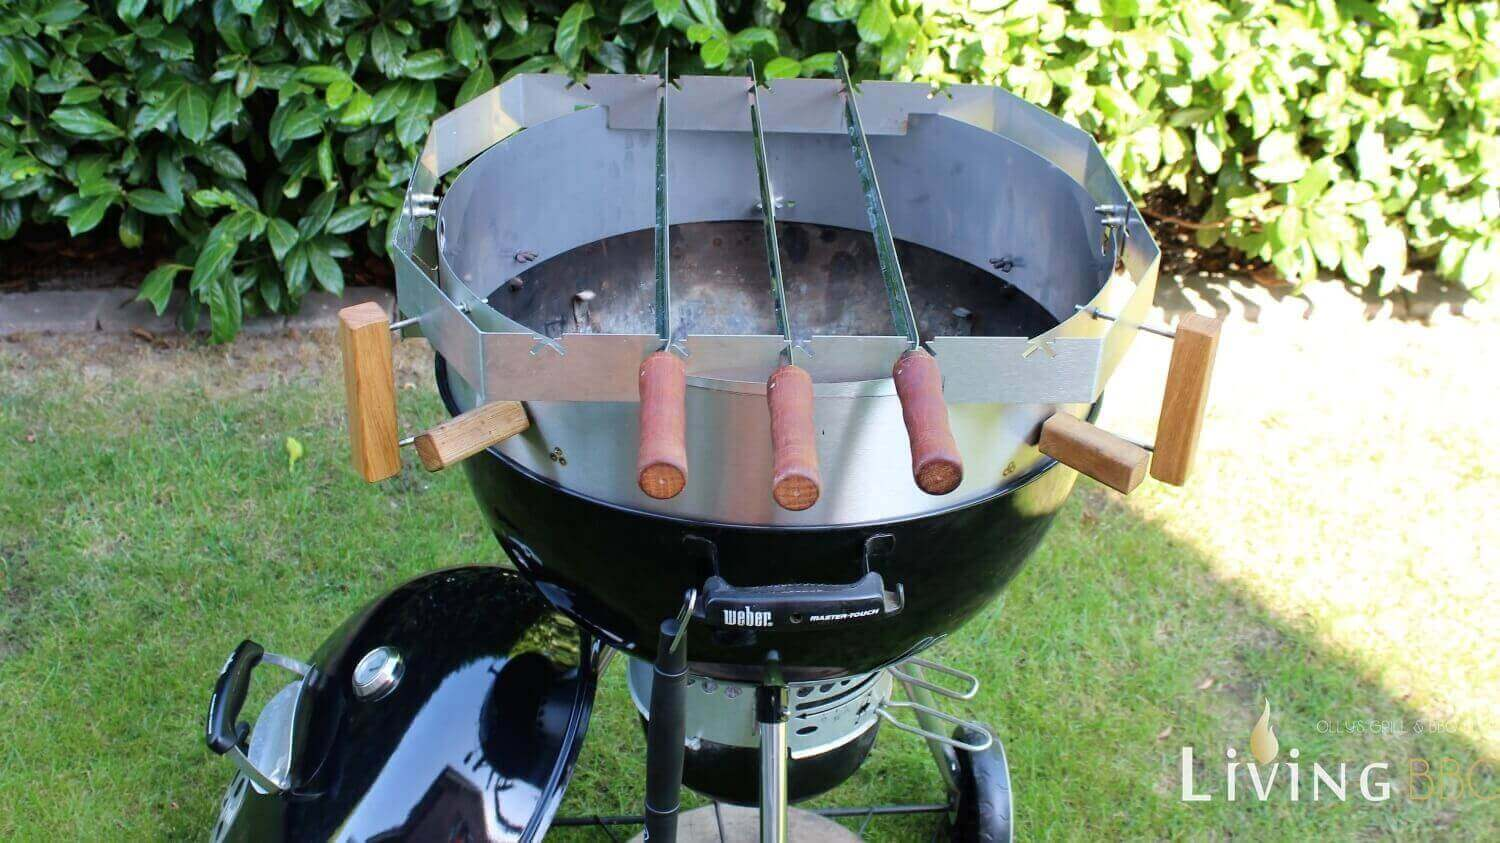 Moesta-BBQ Churrasco moesta-bbq_Churraso Set Moesta BBQ